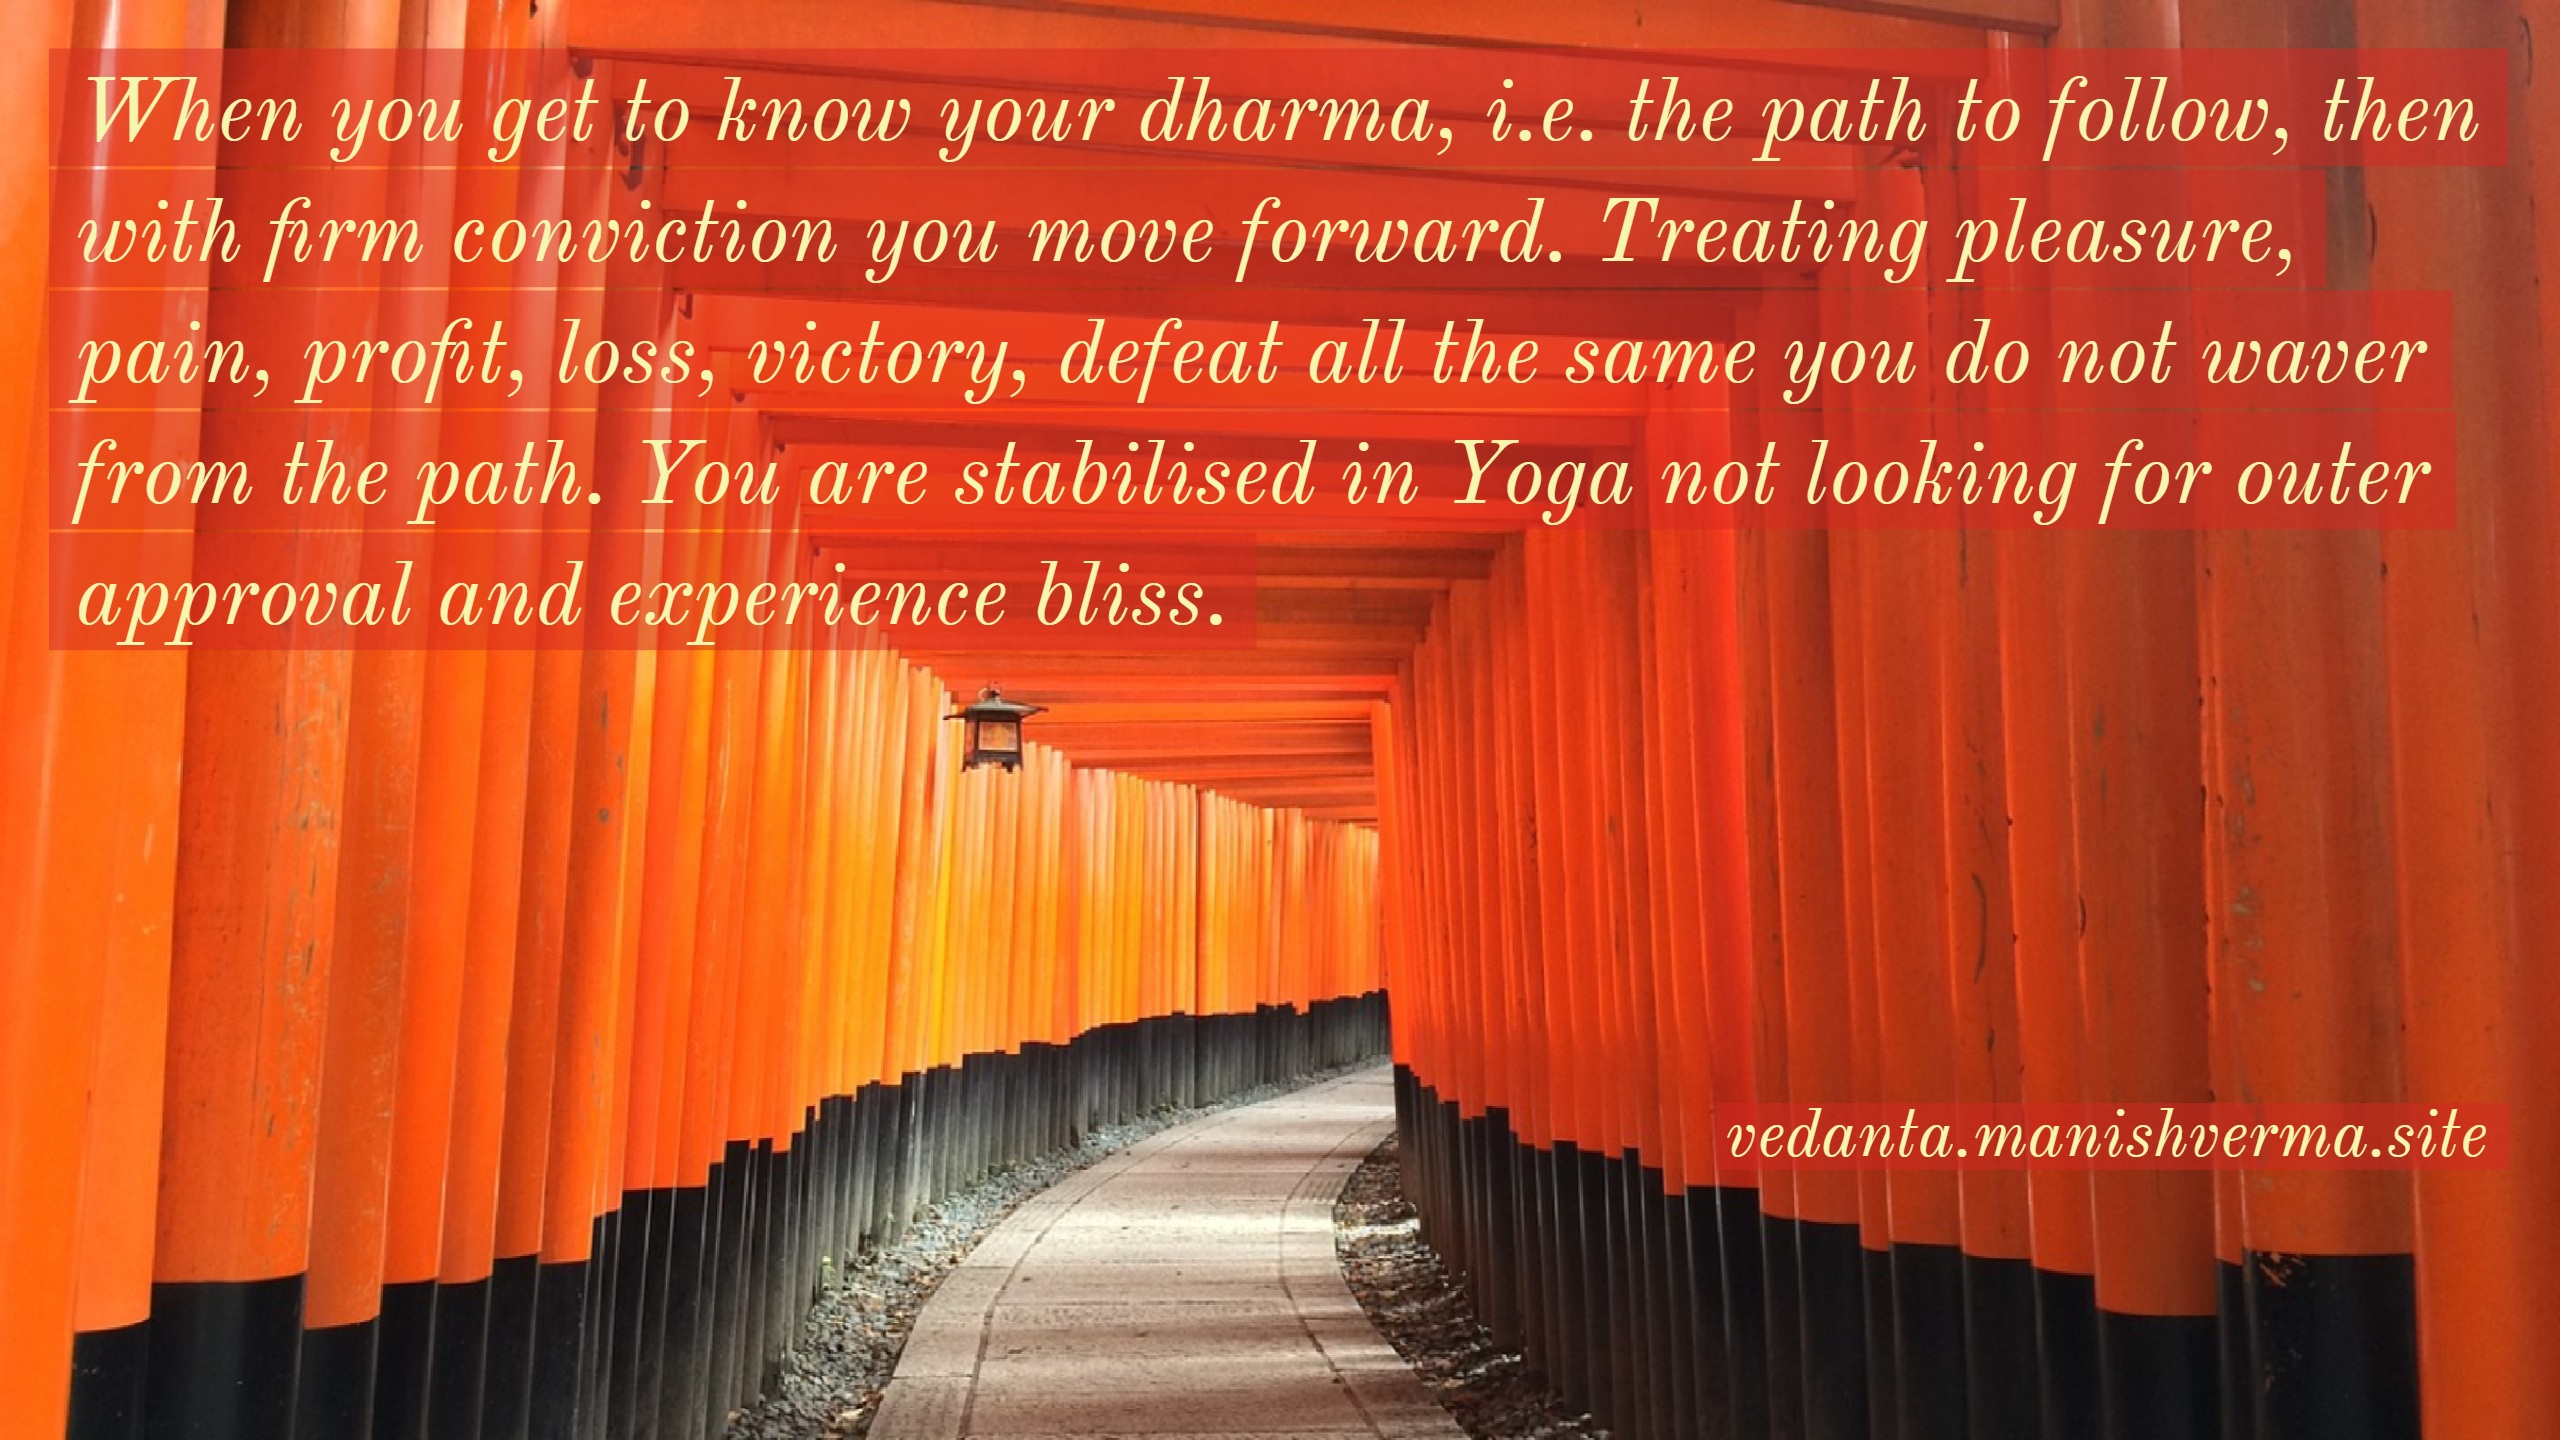 When you get to know your dharma, i.e. the path to follow, then with firm conviction you move forward. Treating pleasure, pain, profit, loss, victory, defeat all the same you do not waver from the path. You are stabilised in Yoga not looking for outer approval and experience bliss. [Manish Verma]